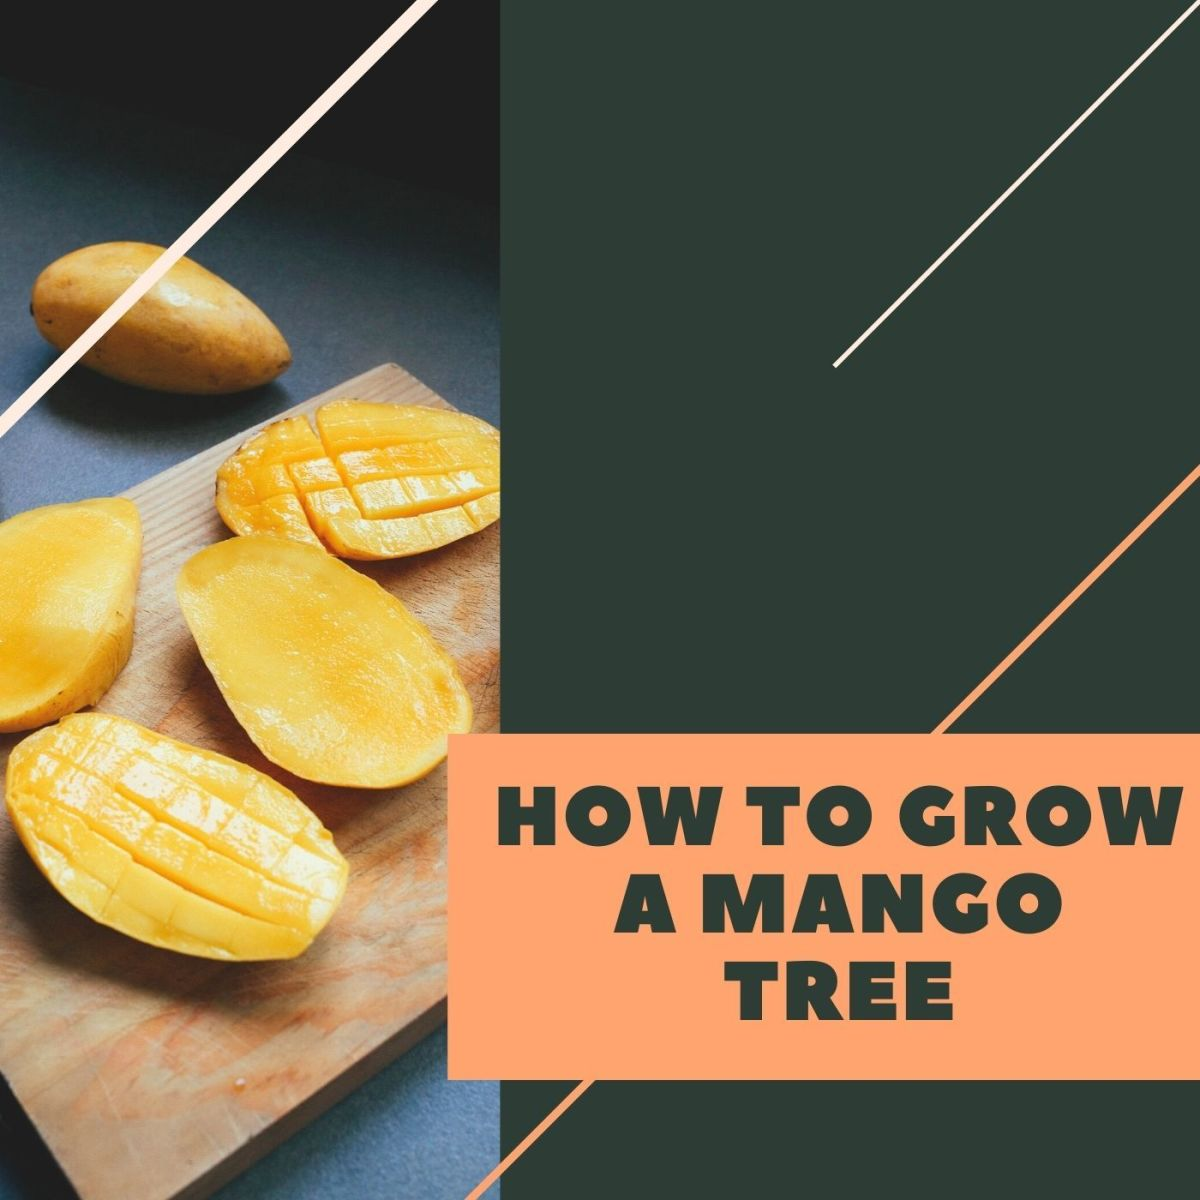 Follow these quick 6 steps to grow your own tree!